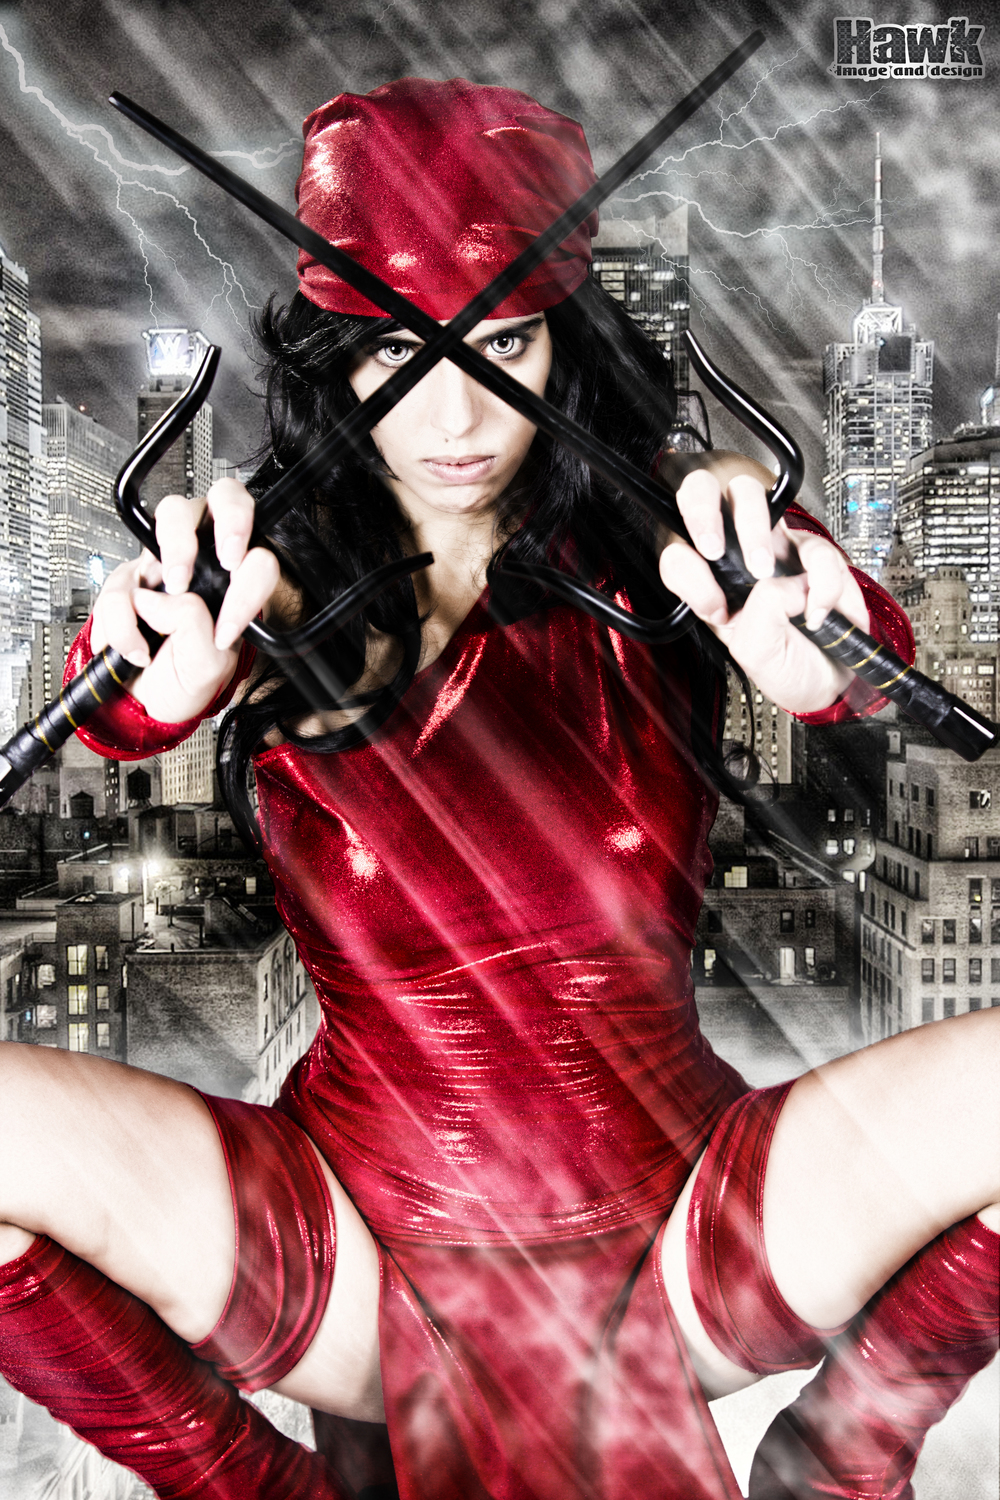 Larxenneis Elektra | Photo by:Hawk Image and Design